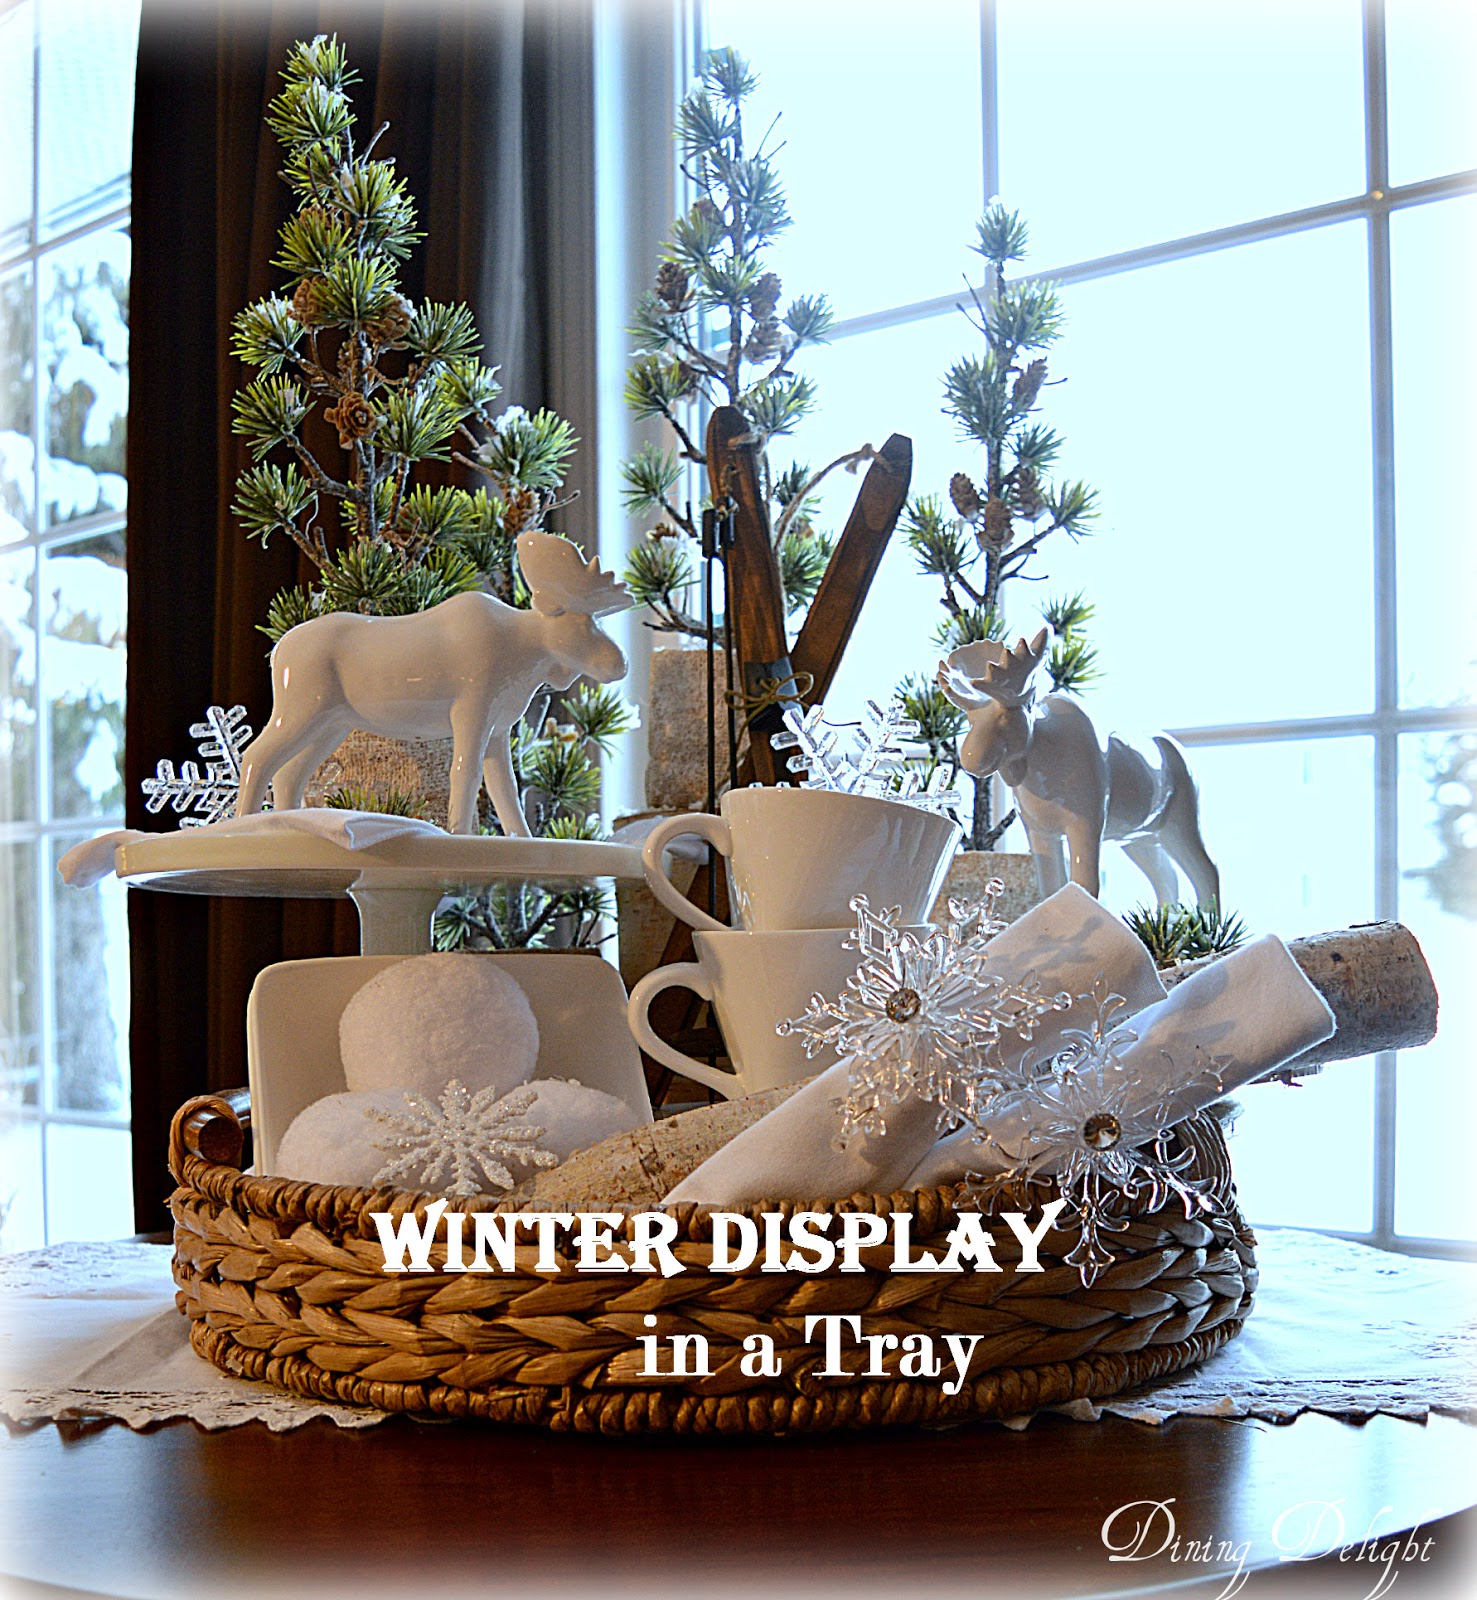 Dining Delight: Winter Display In A Tray